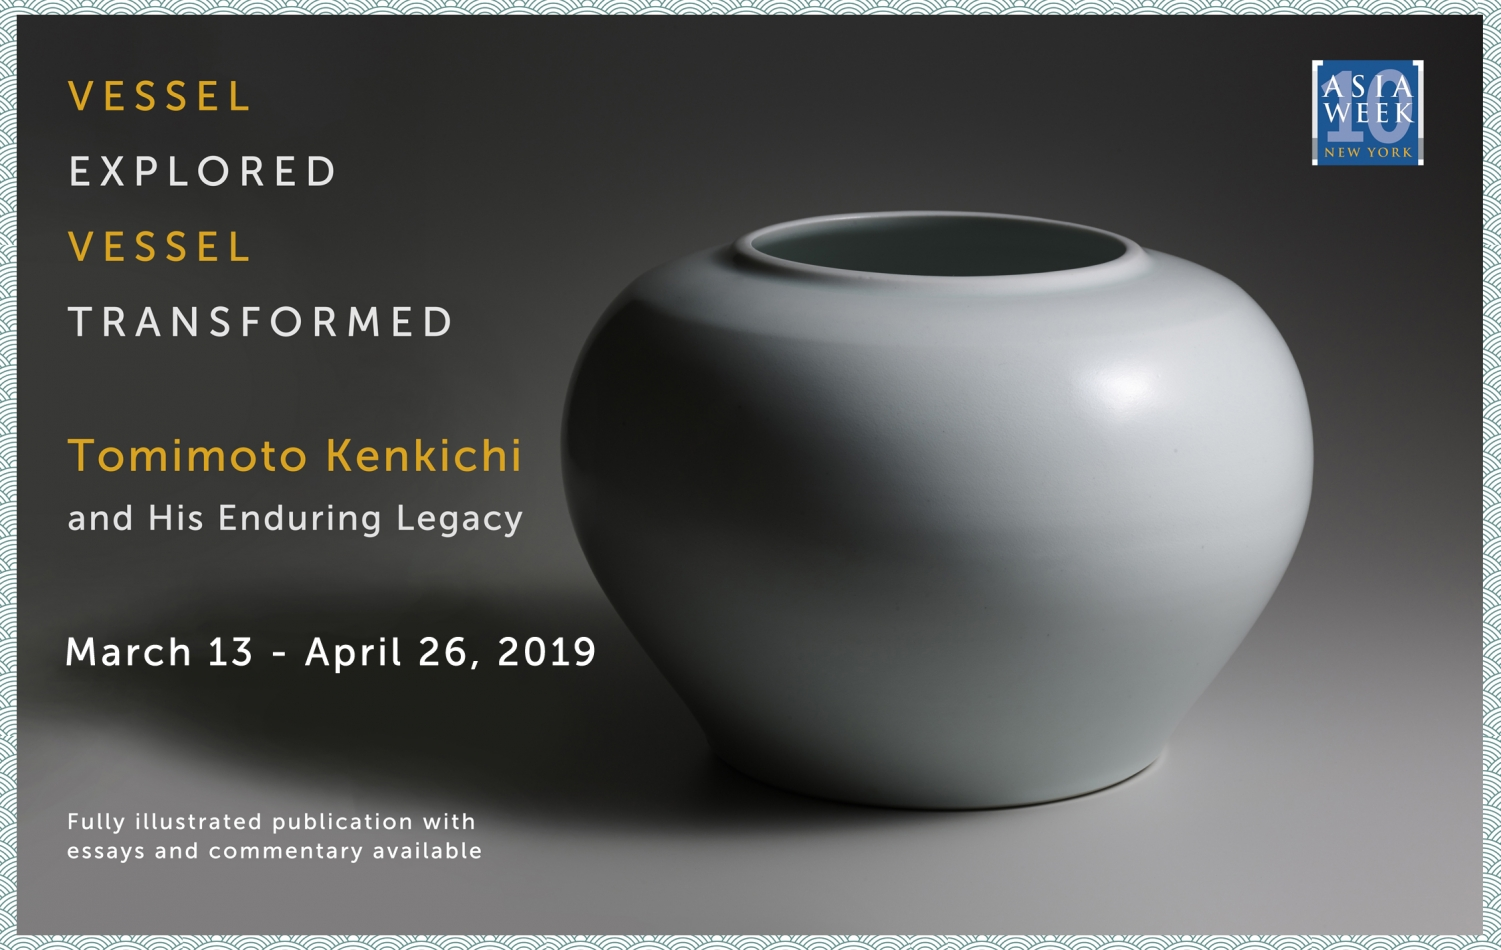 Vessel Explored / Vessel Transformed - Tomimoto Kenkichi and his Enduring Legacy